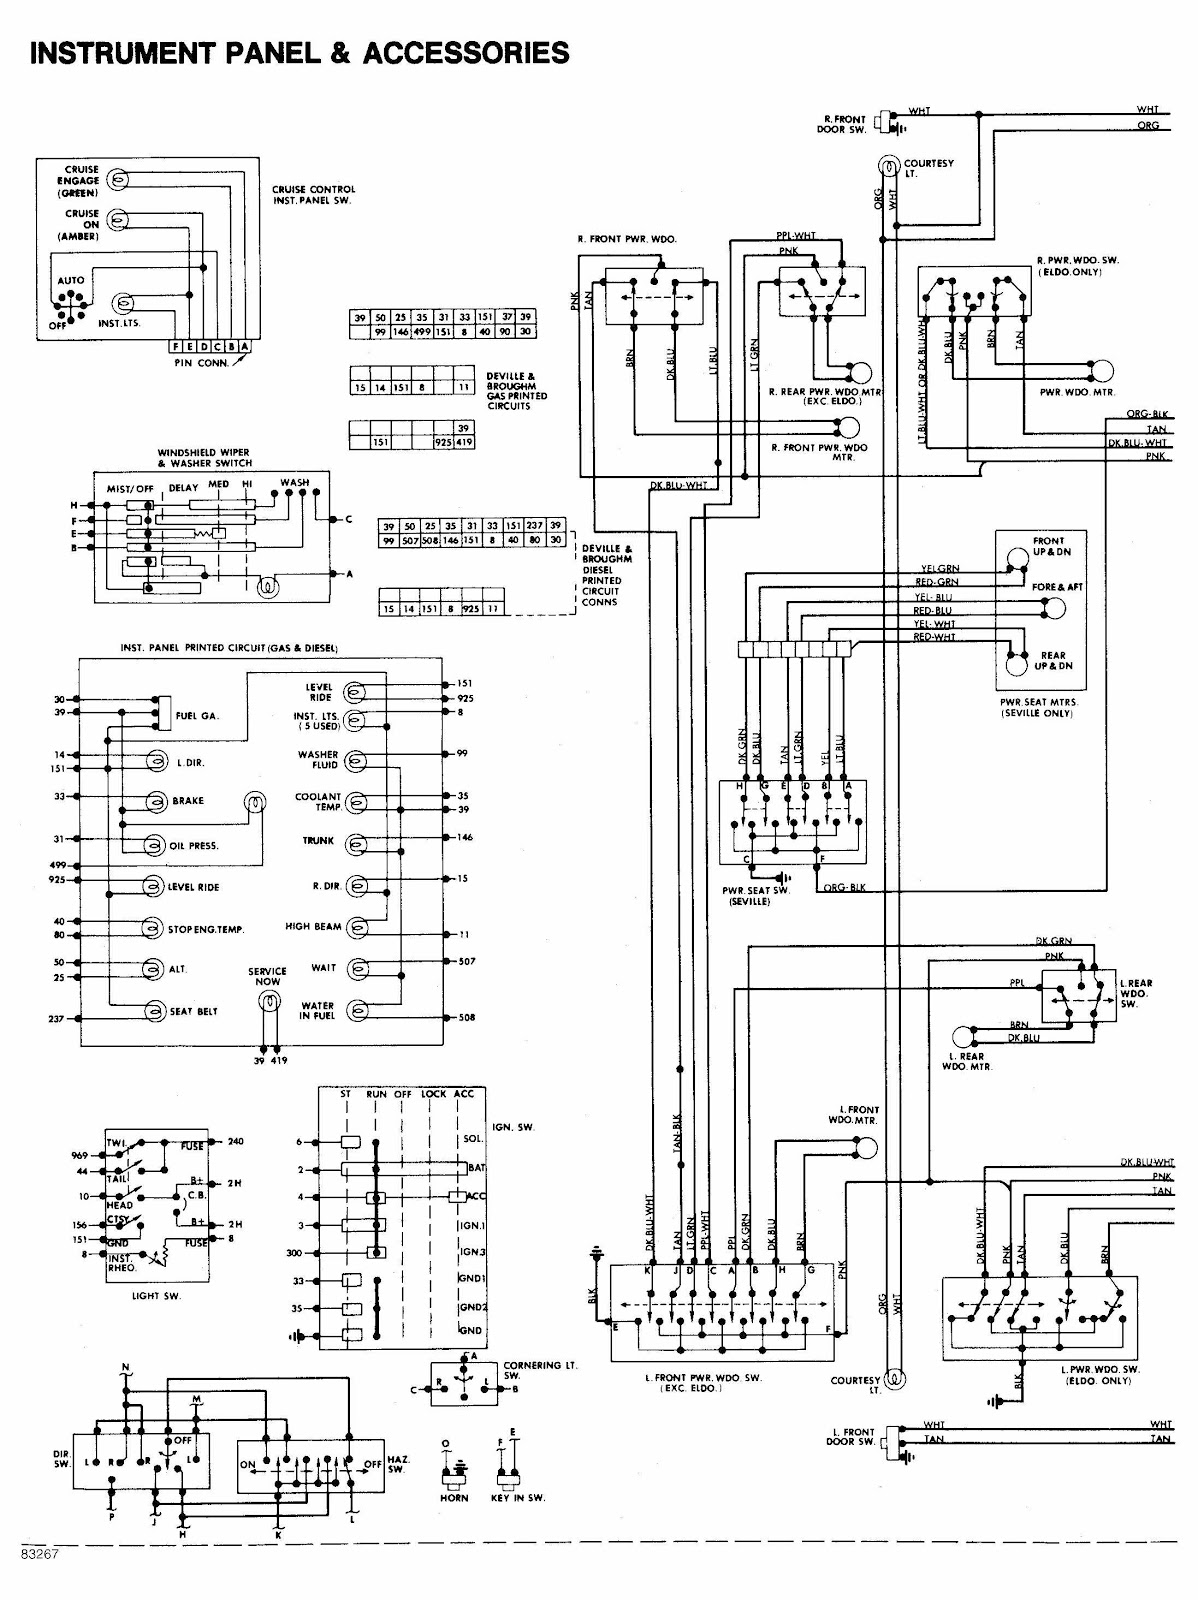 cadillac de ville 1984 instrument panel and accessories wiring cadillac deville 1984 instrument panel and accessories wiring diagram